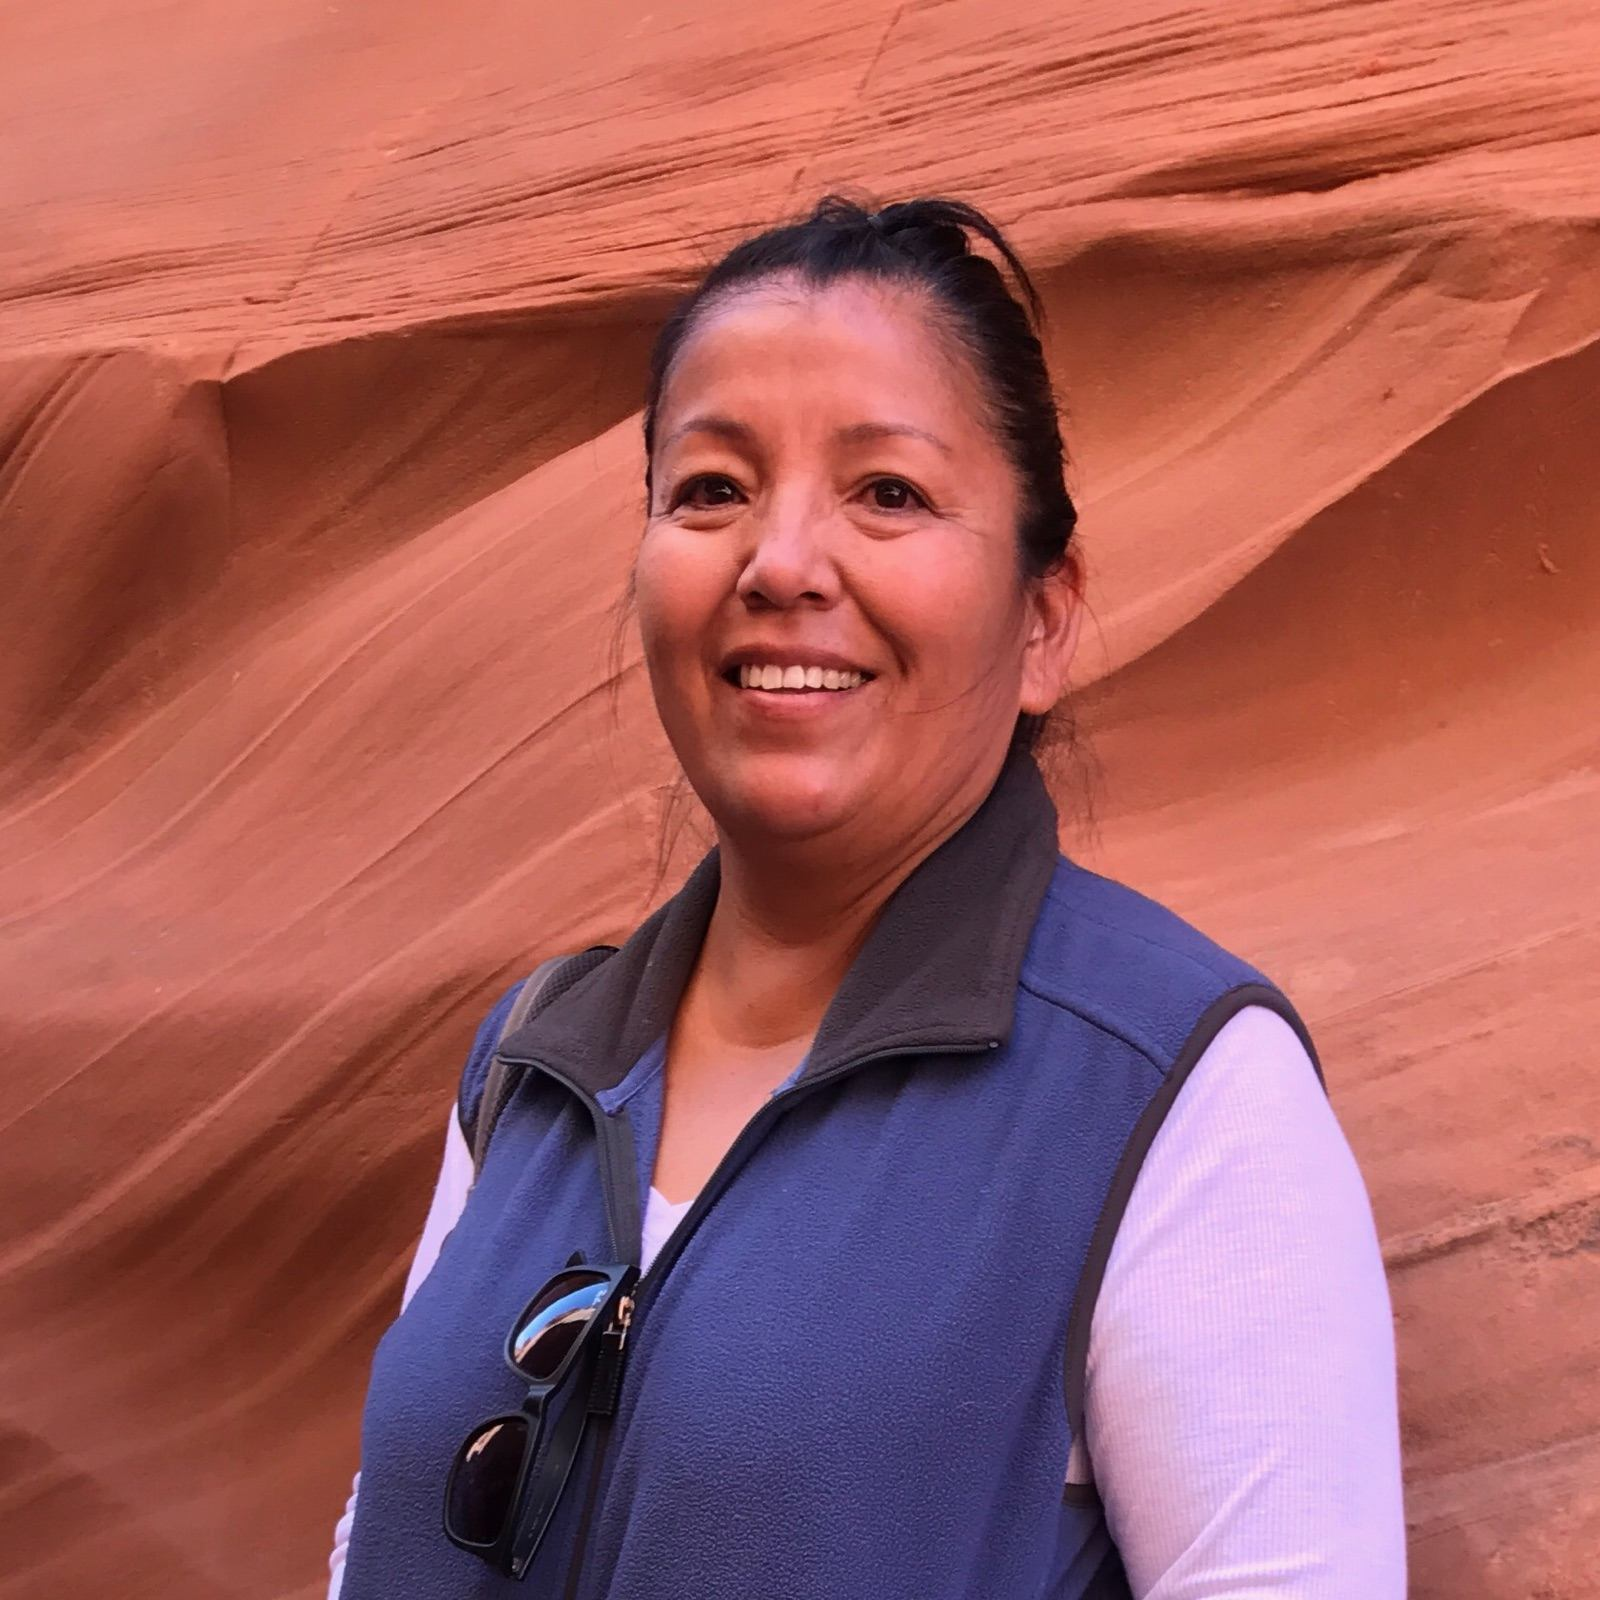 Owner of Antelope Canyon and Horseshoe Bend Tours